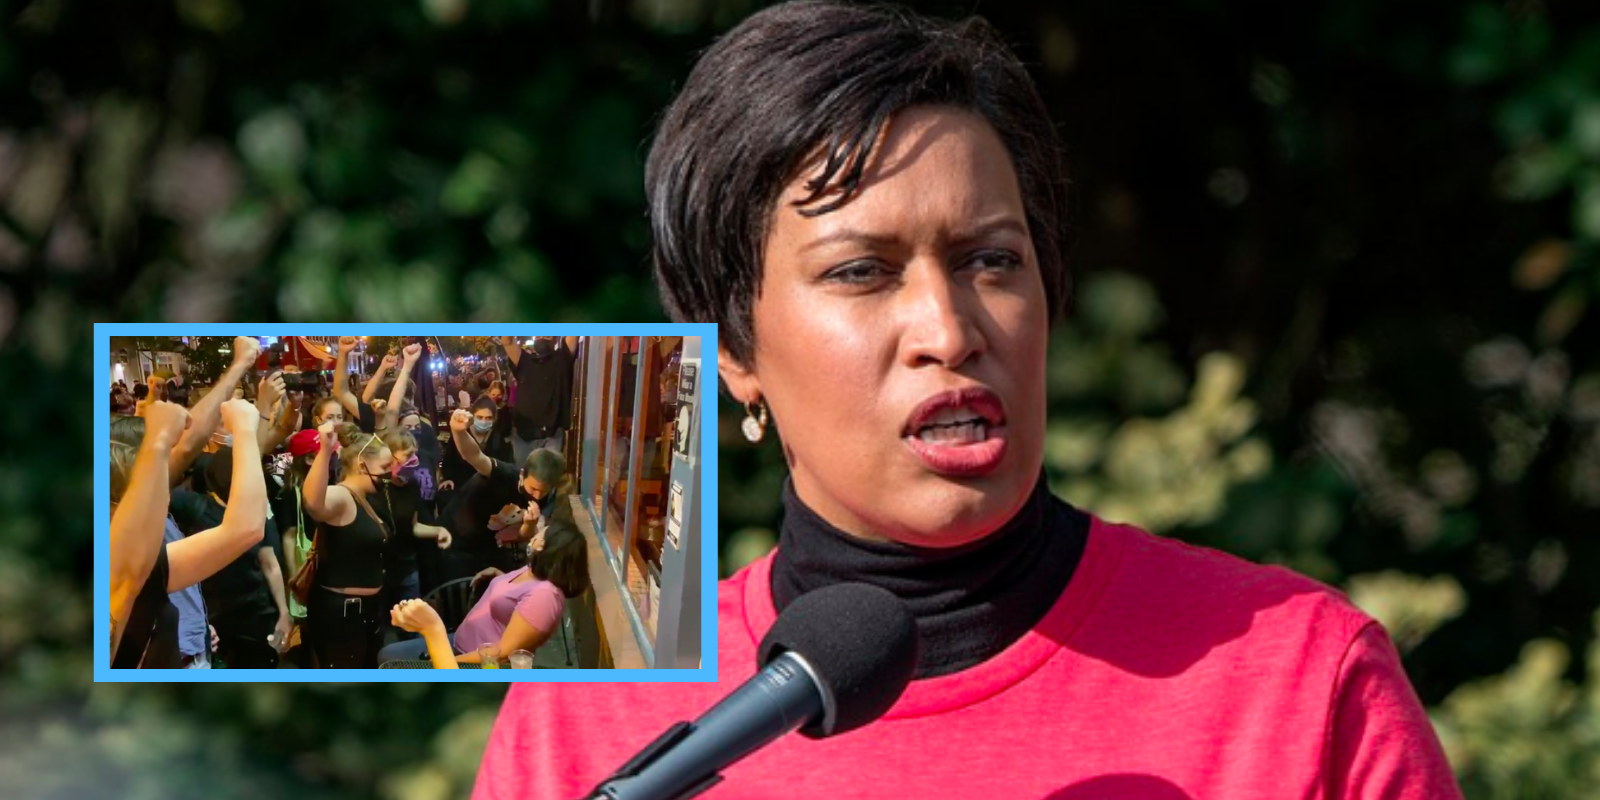 DC Mayor tells residents that if they are surrounded by BLM mobs, they should just call the police